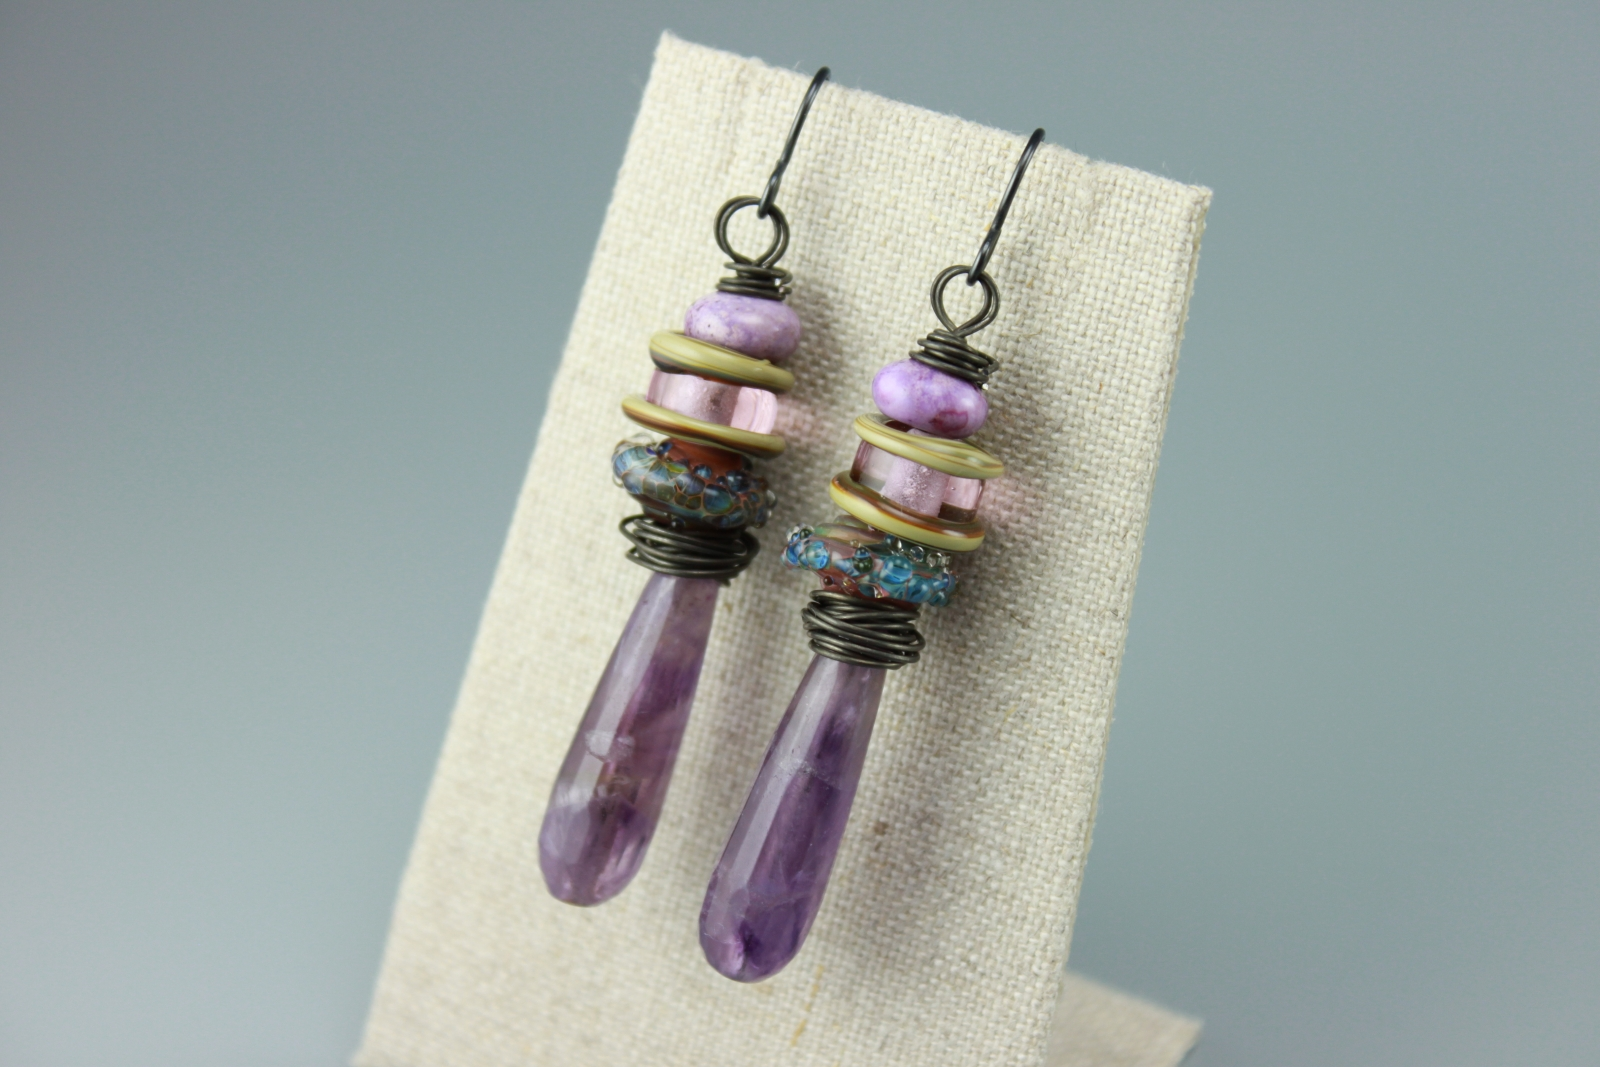 Directions for Making Your Own Amethyst Necklace, Bracelet ...